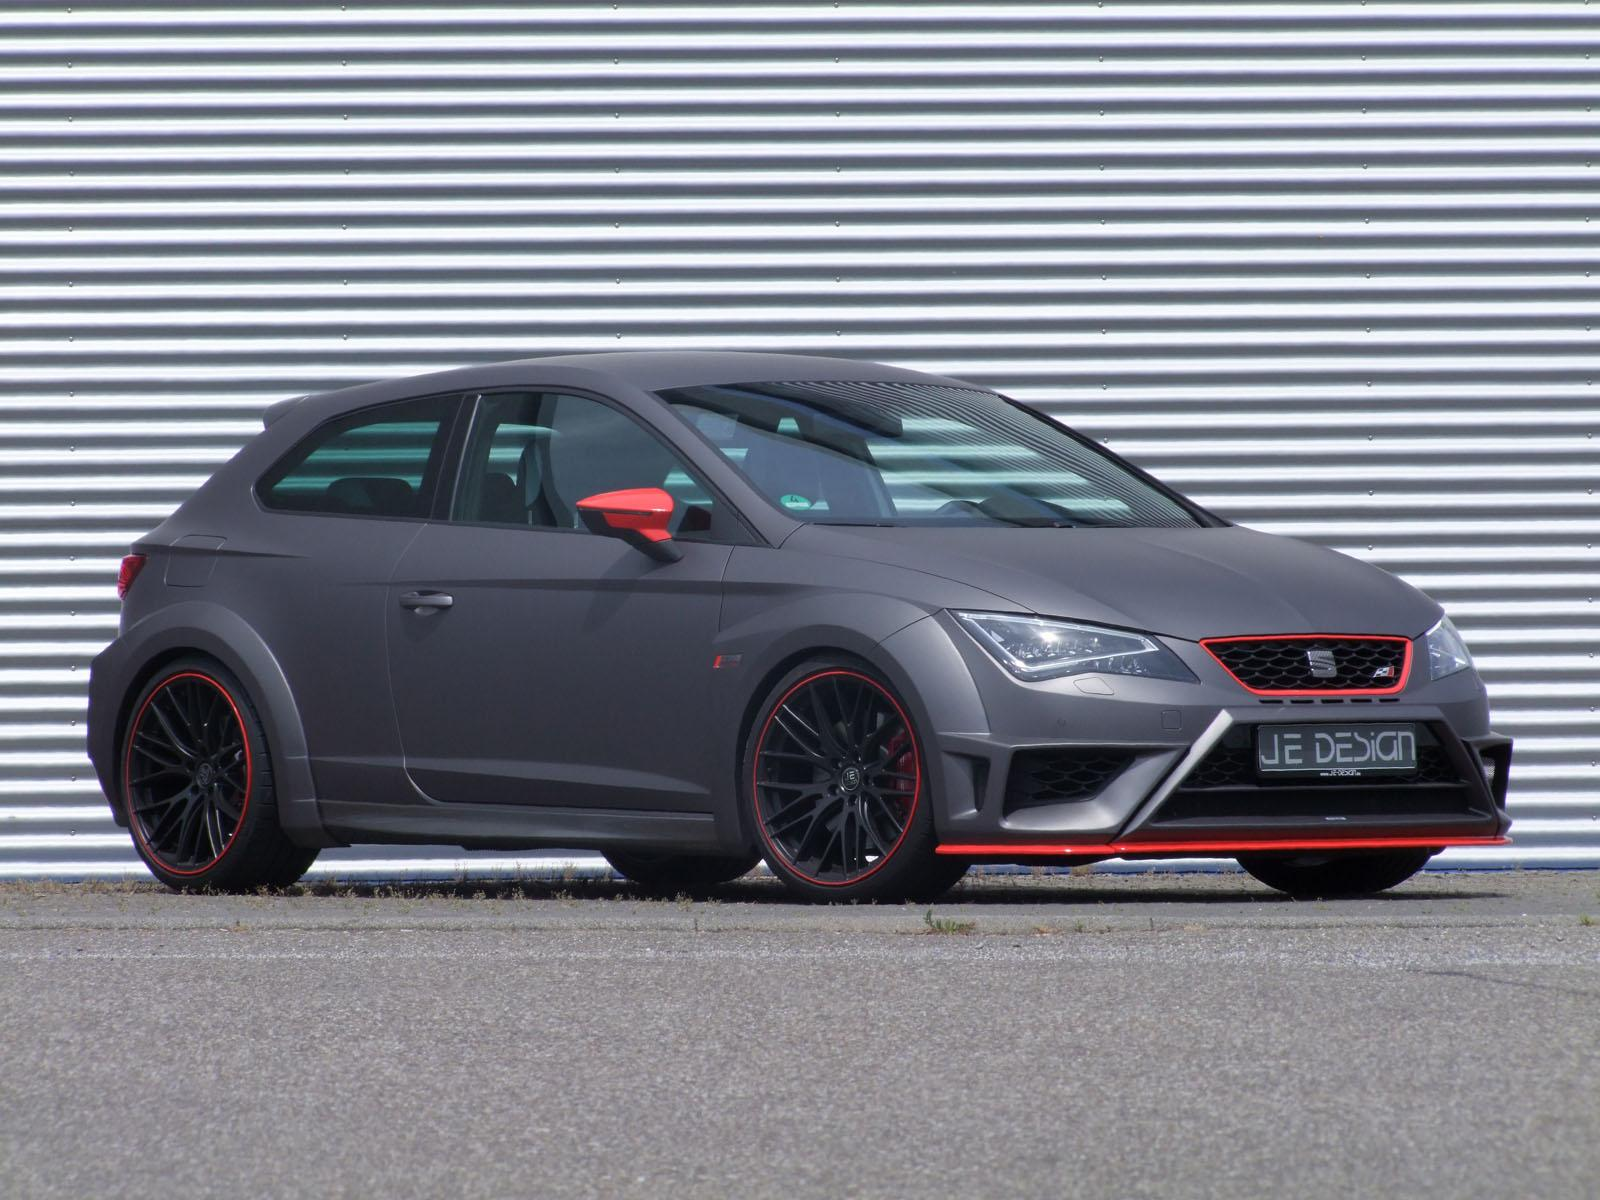 je design�s seat leon cupra widebody kit impersonates leon